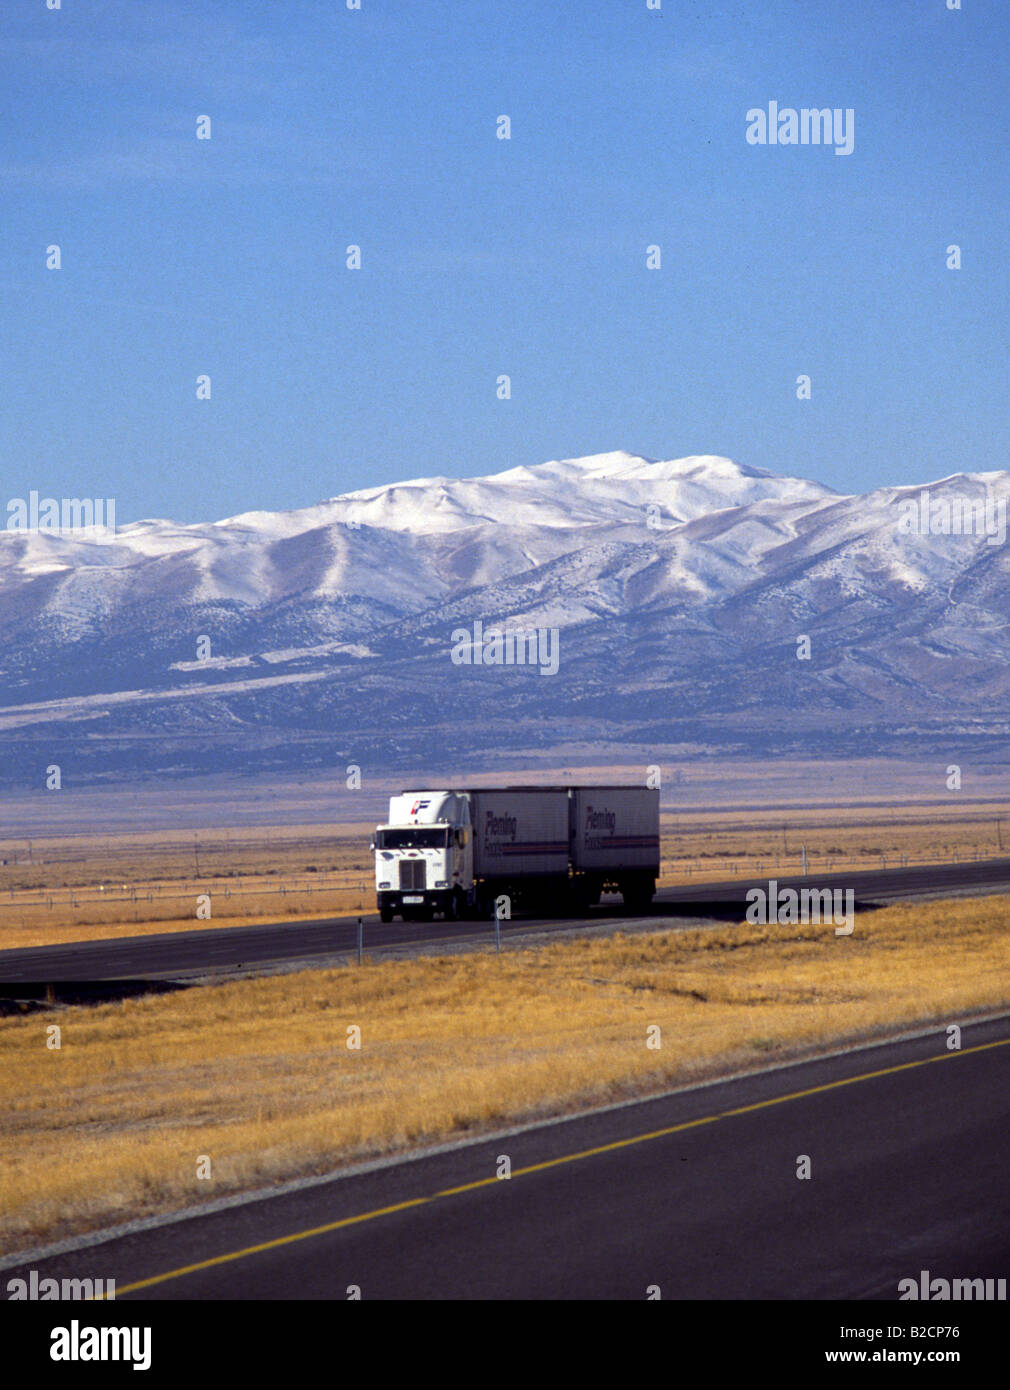 Big Rig Long Haul Trucks Over the road USA Mountains - Stock Image